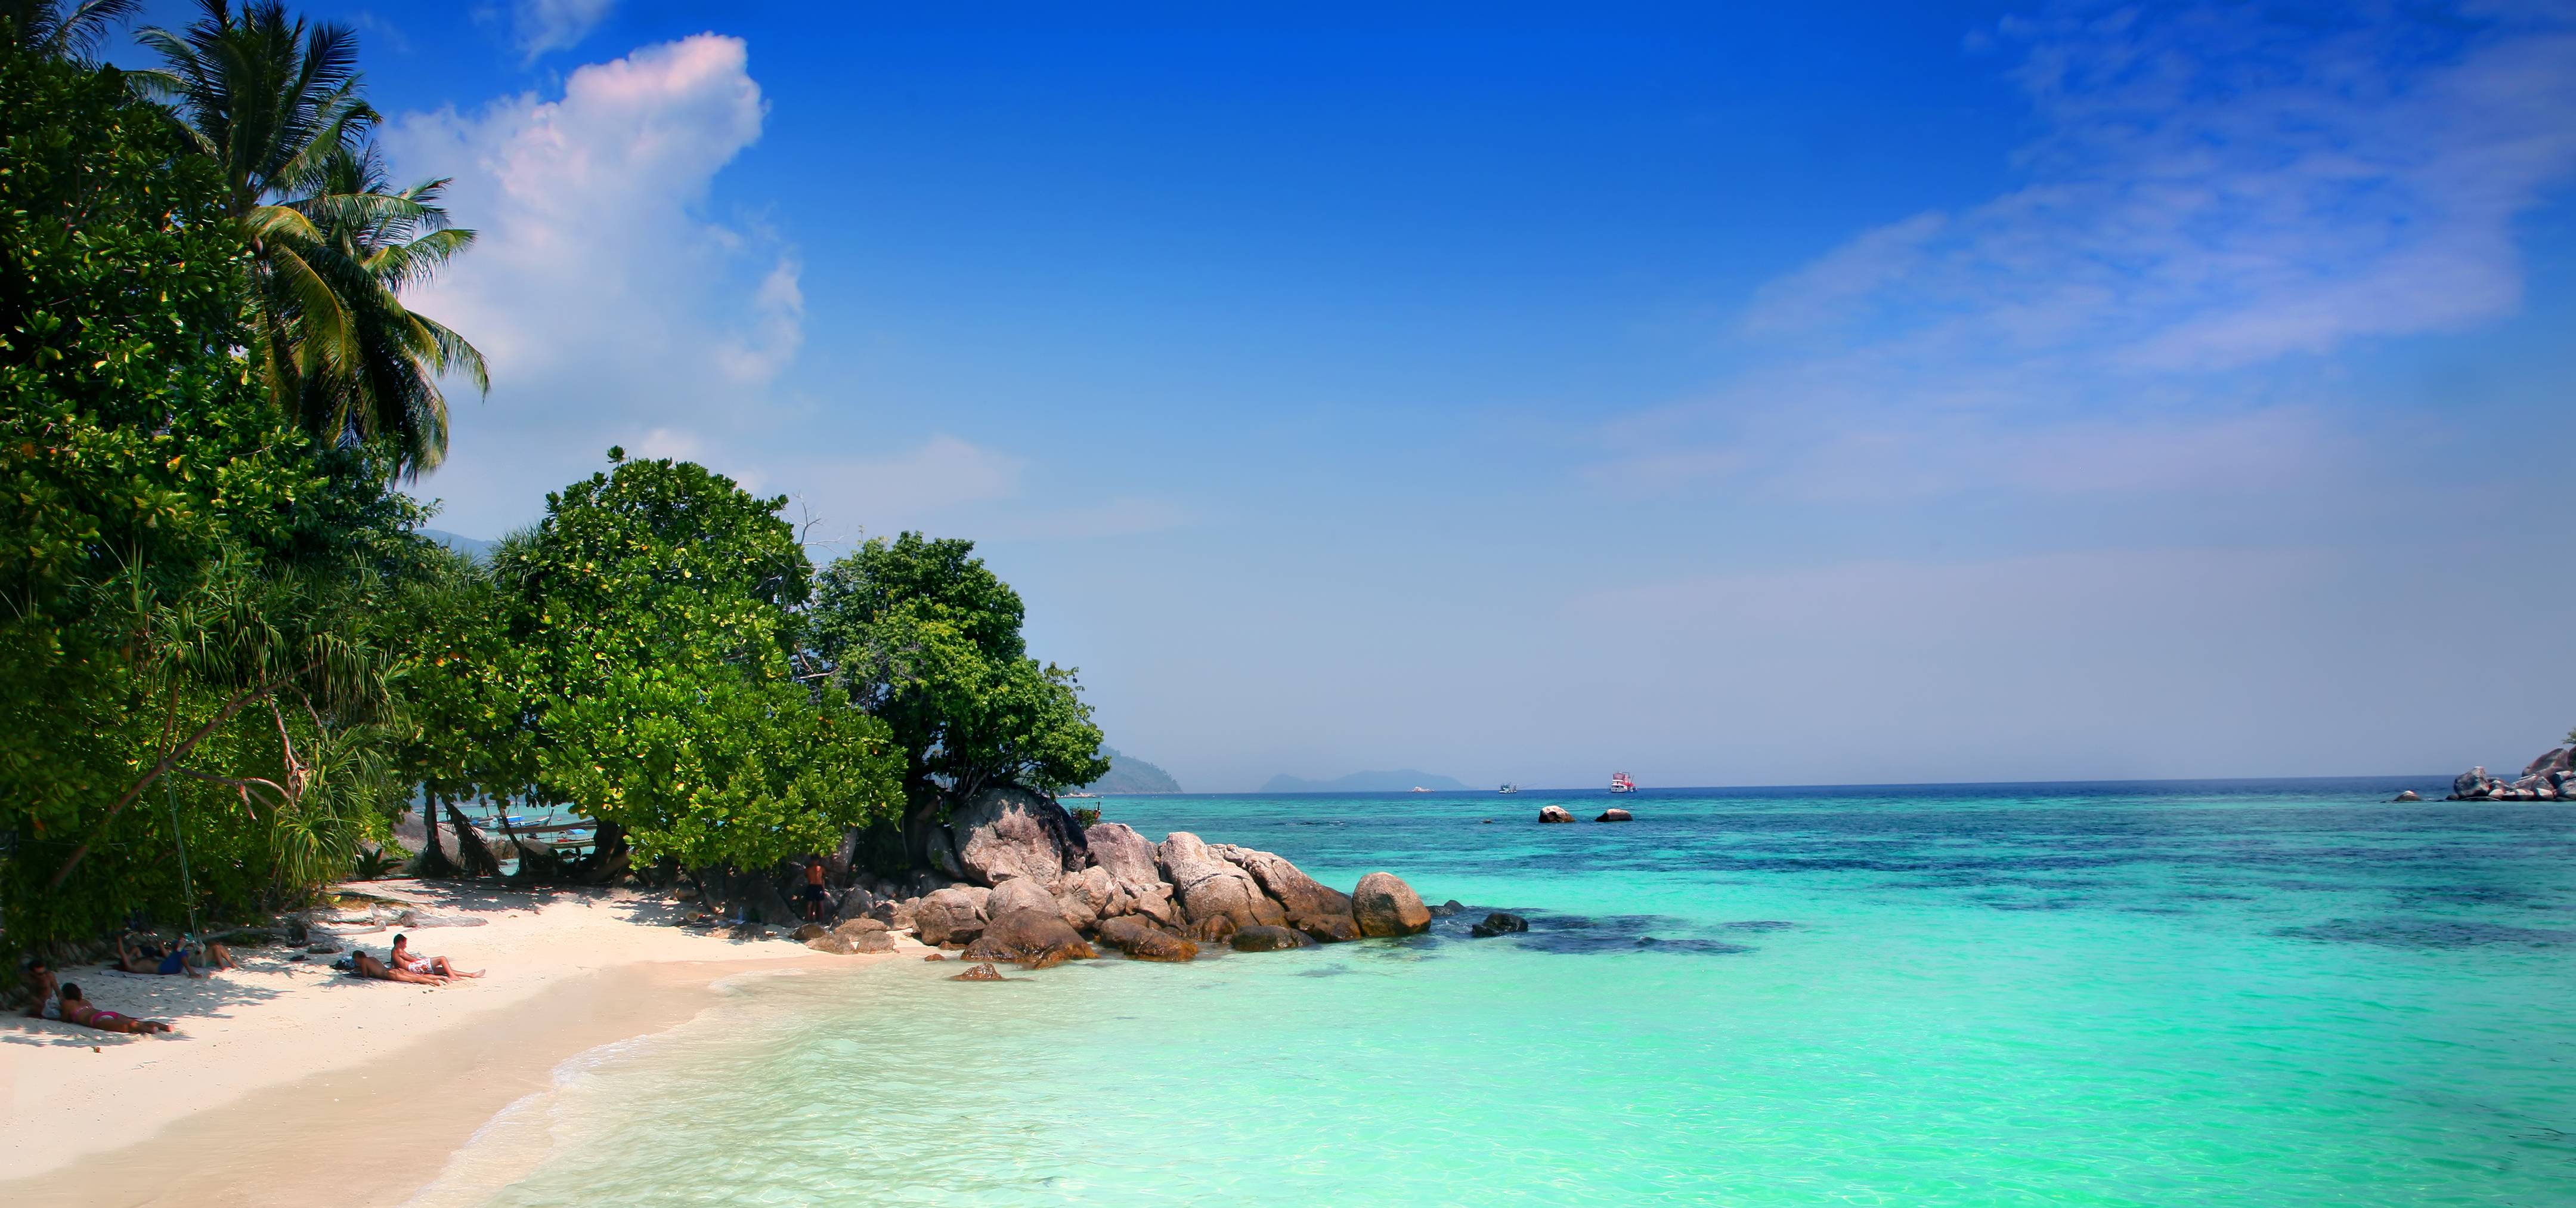 Exotic Beach Wallpaper Widescreen Wallpapers of Exotic 4320x2025